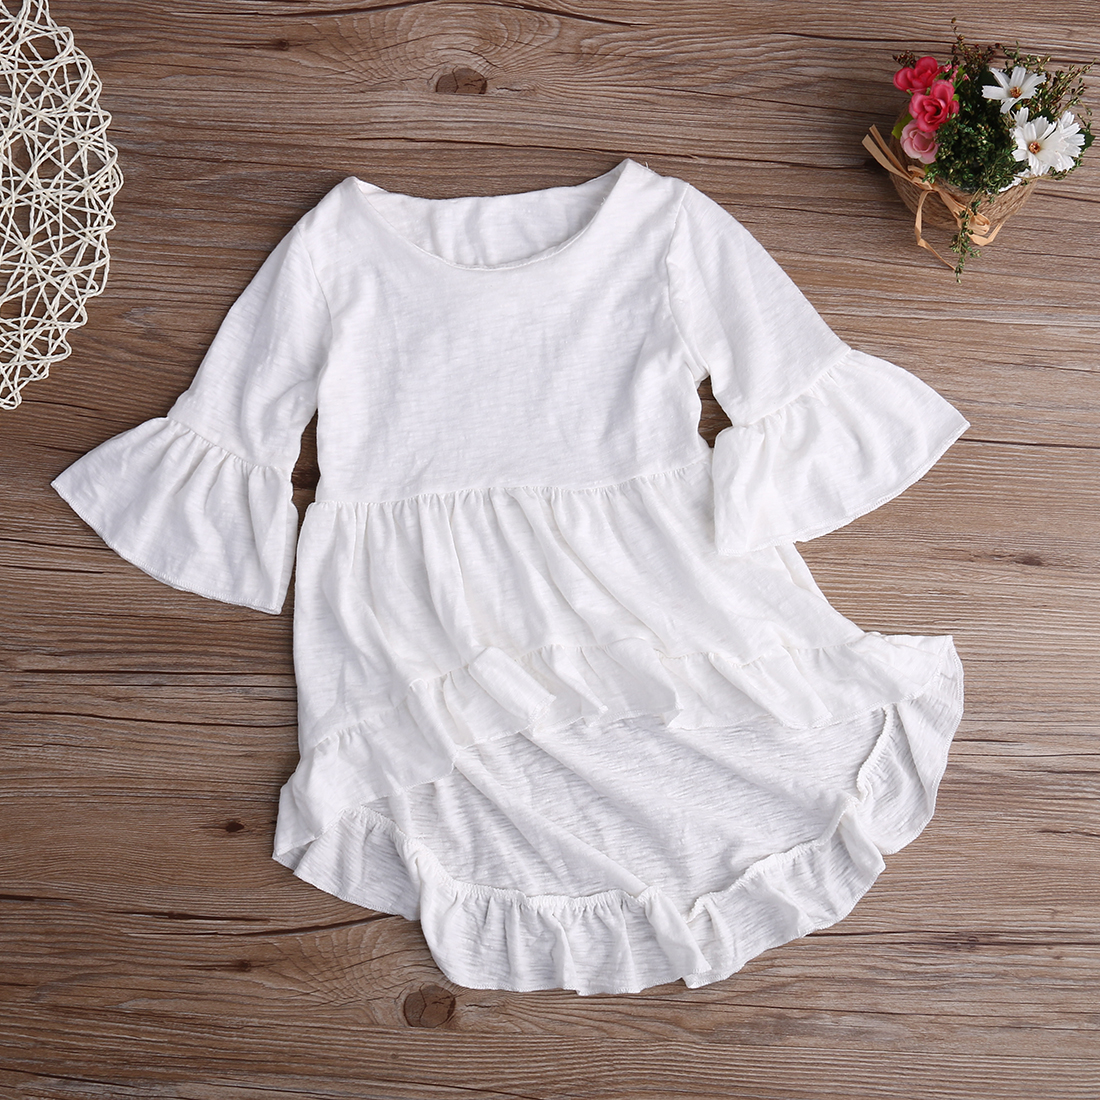 White Baby Girls Dress Frills Flare Sleeve Top T-Shirt Party Ruffles Hem Dresses 1-6Y red longline sleeveless check shirt with split hem